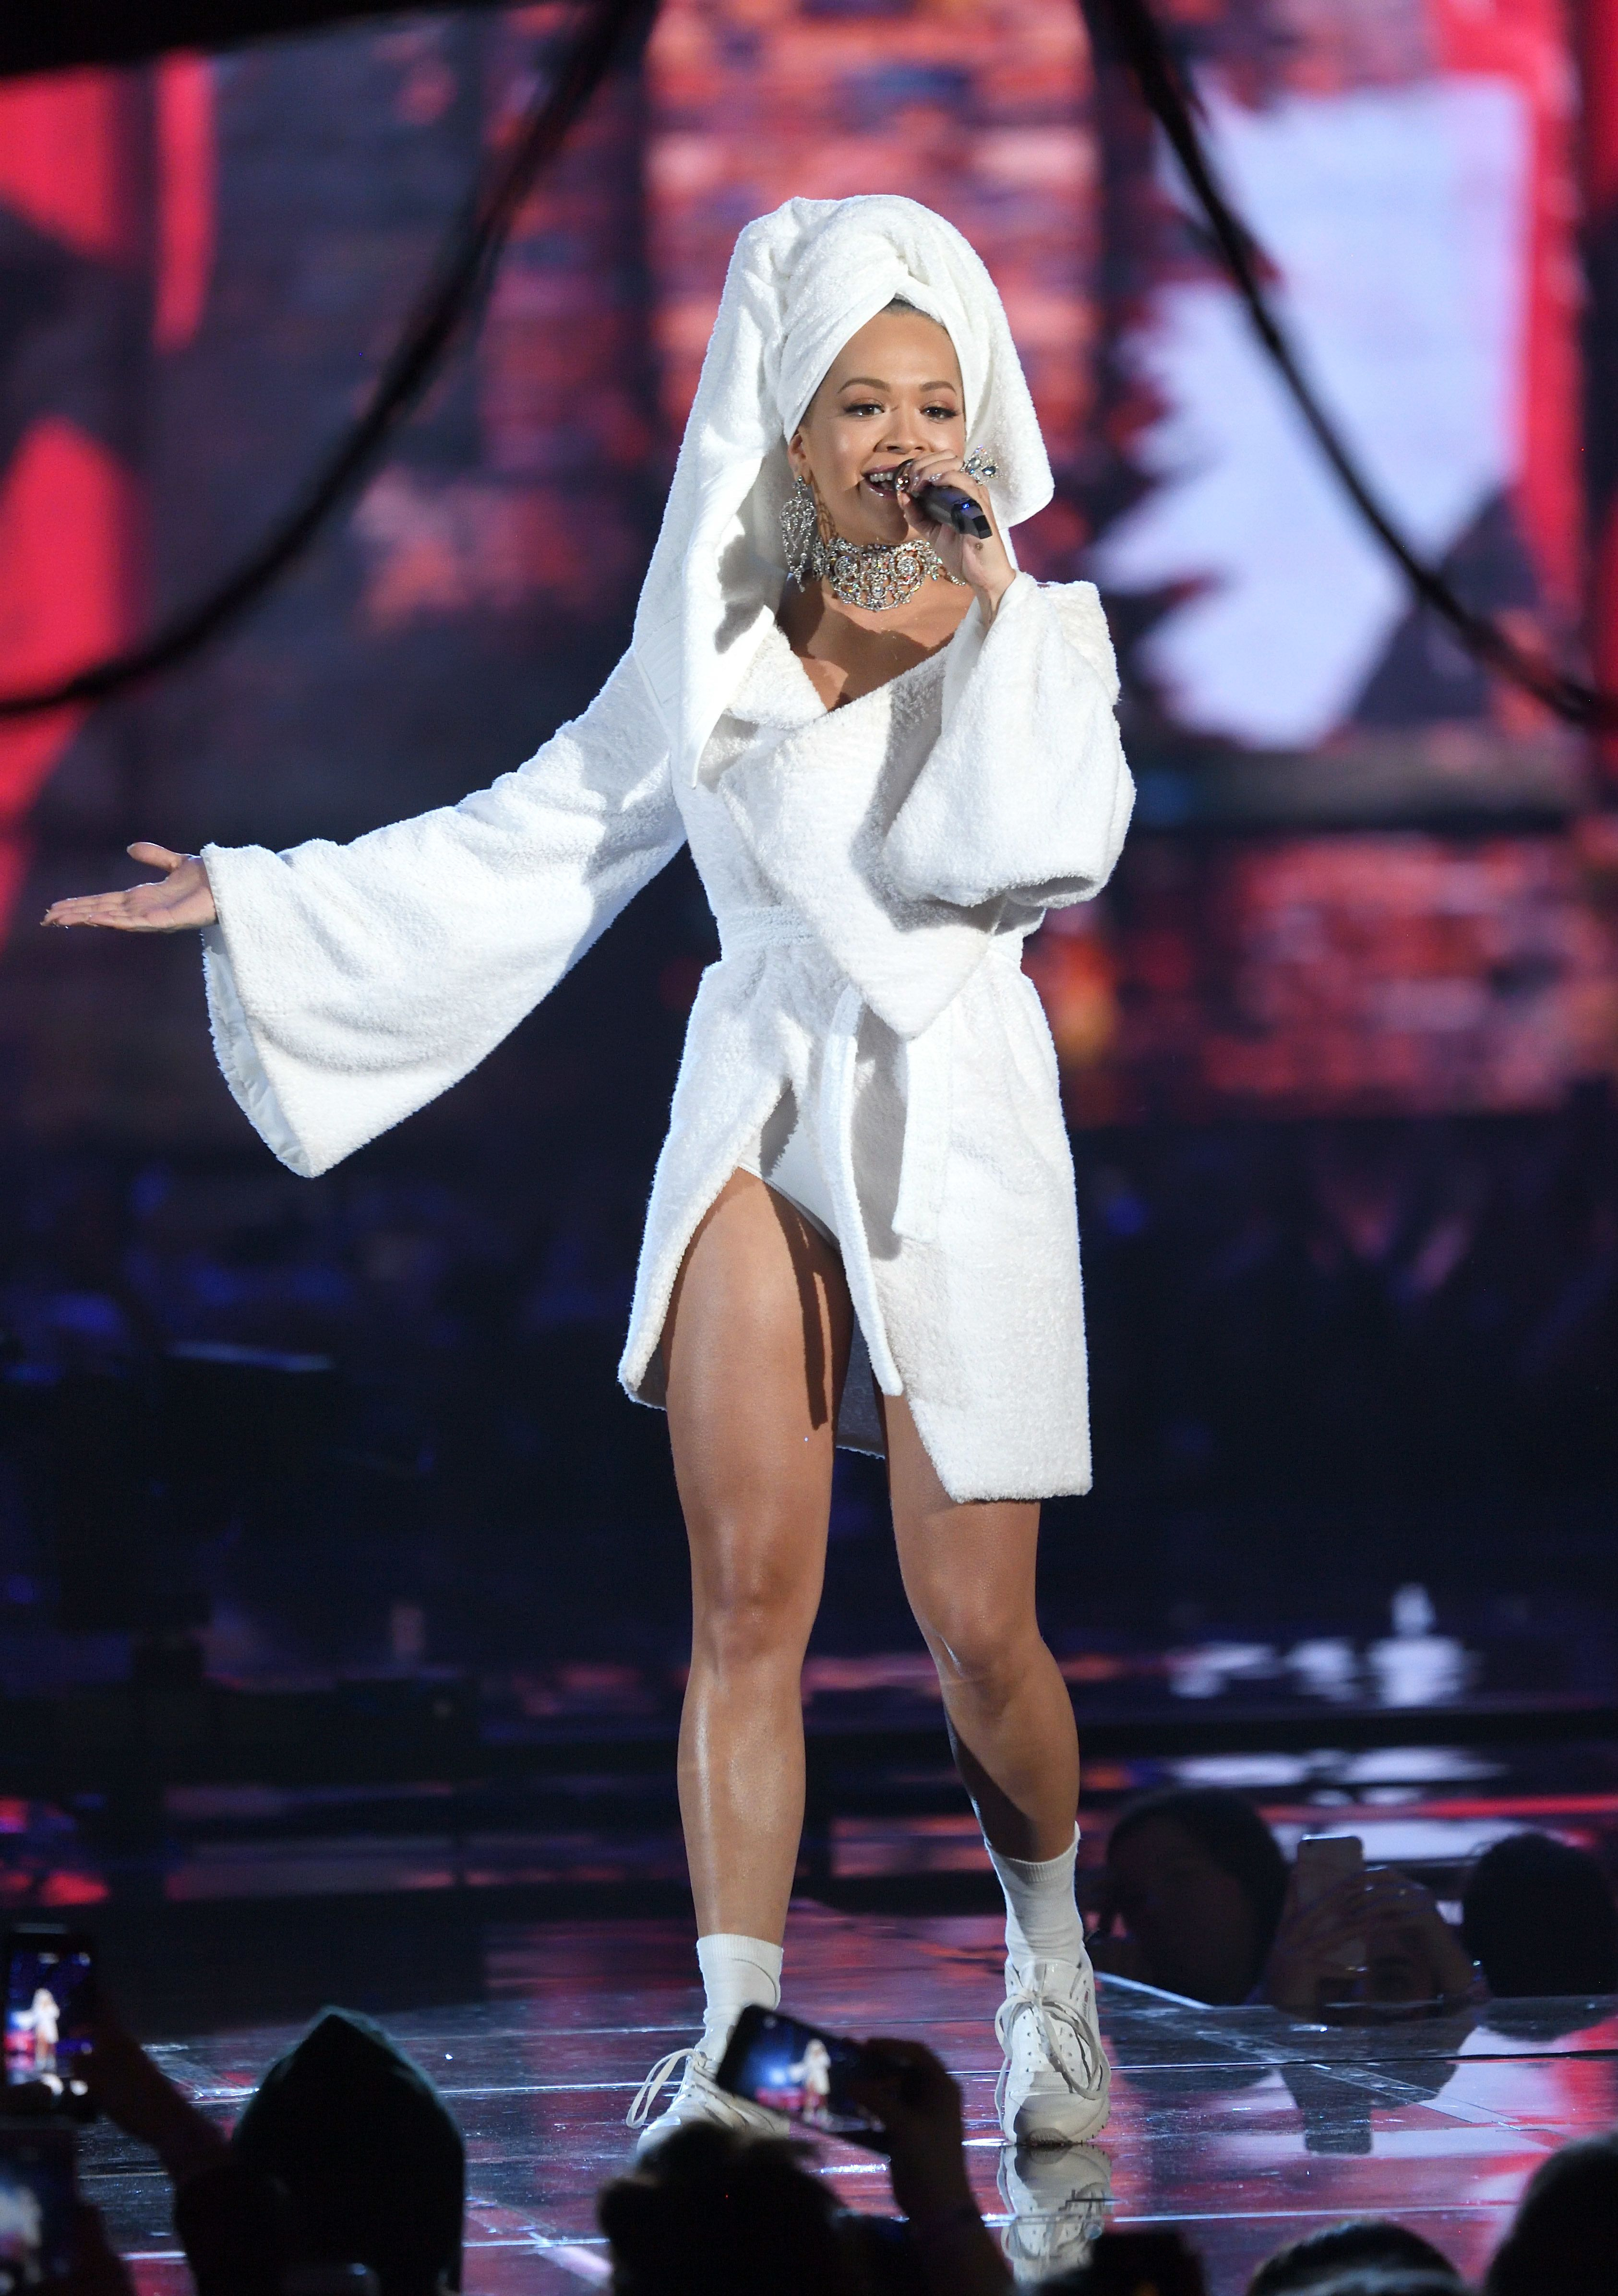 Rita Ora's First Look For The MTV EMA Awards Is Proof You Can Rock The World In